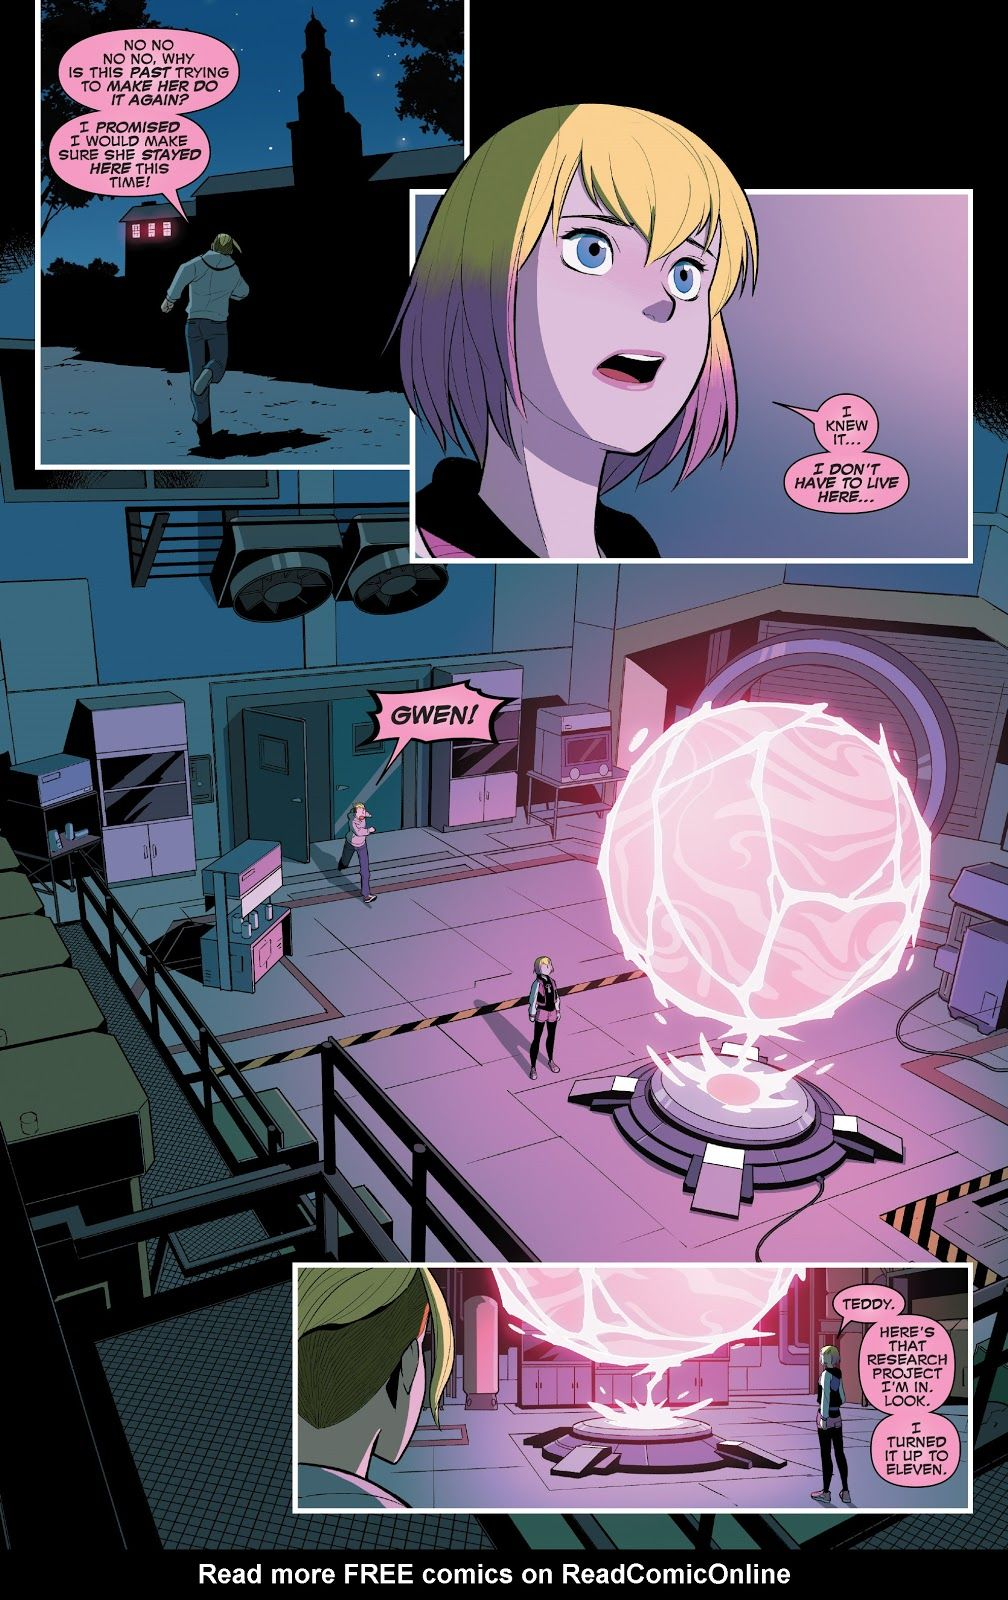 The Unbelievable Gwenpool Issue 16 Read The Unbelievable Gwenpool Issue 16 Comic Online In High Quality Marvel Heroes Comics Marvel